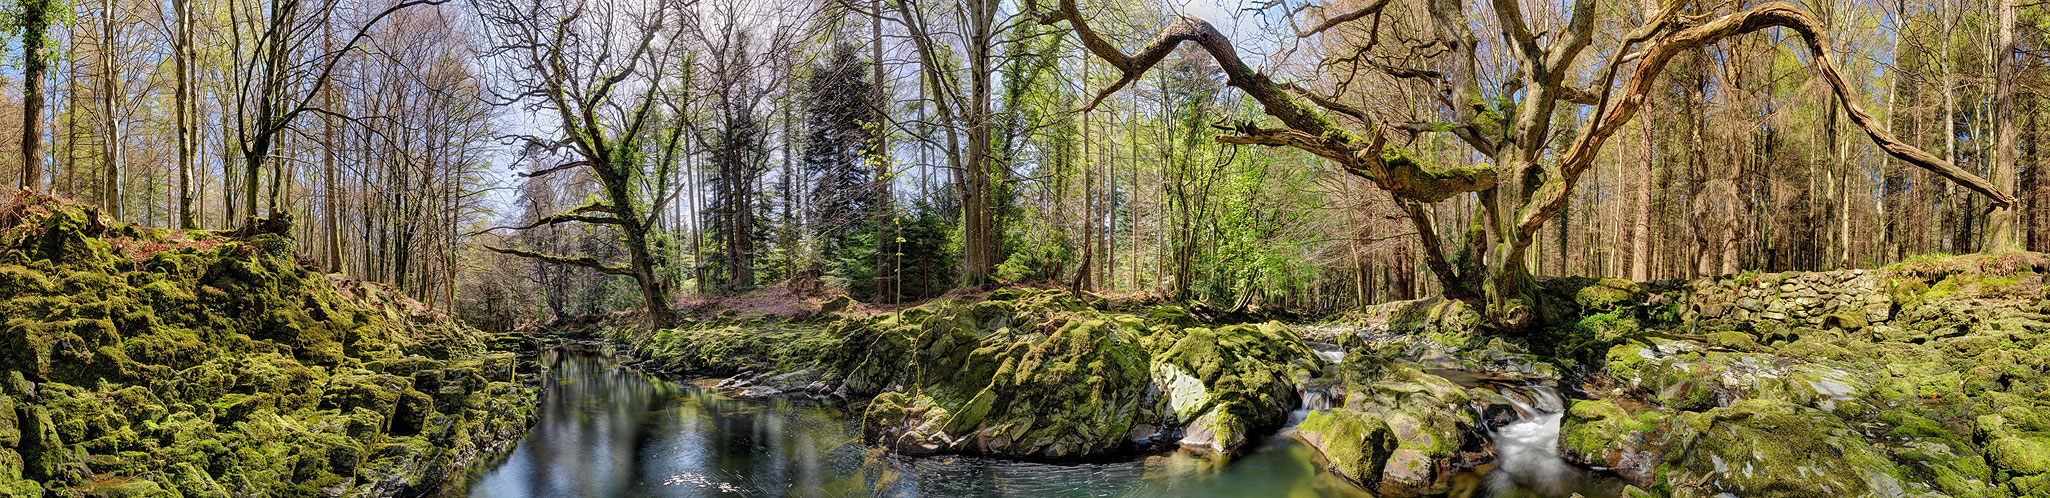 The Shimna River Tollymore Forest